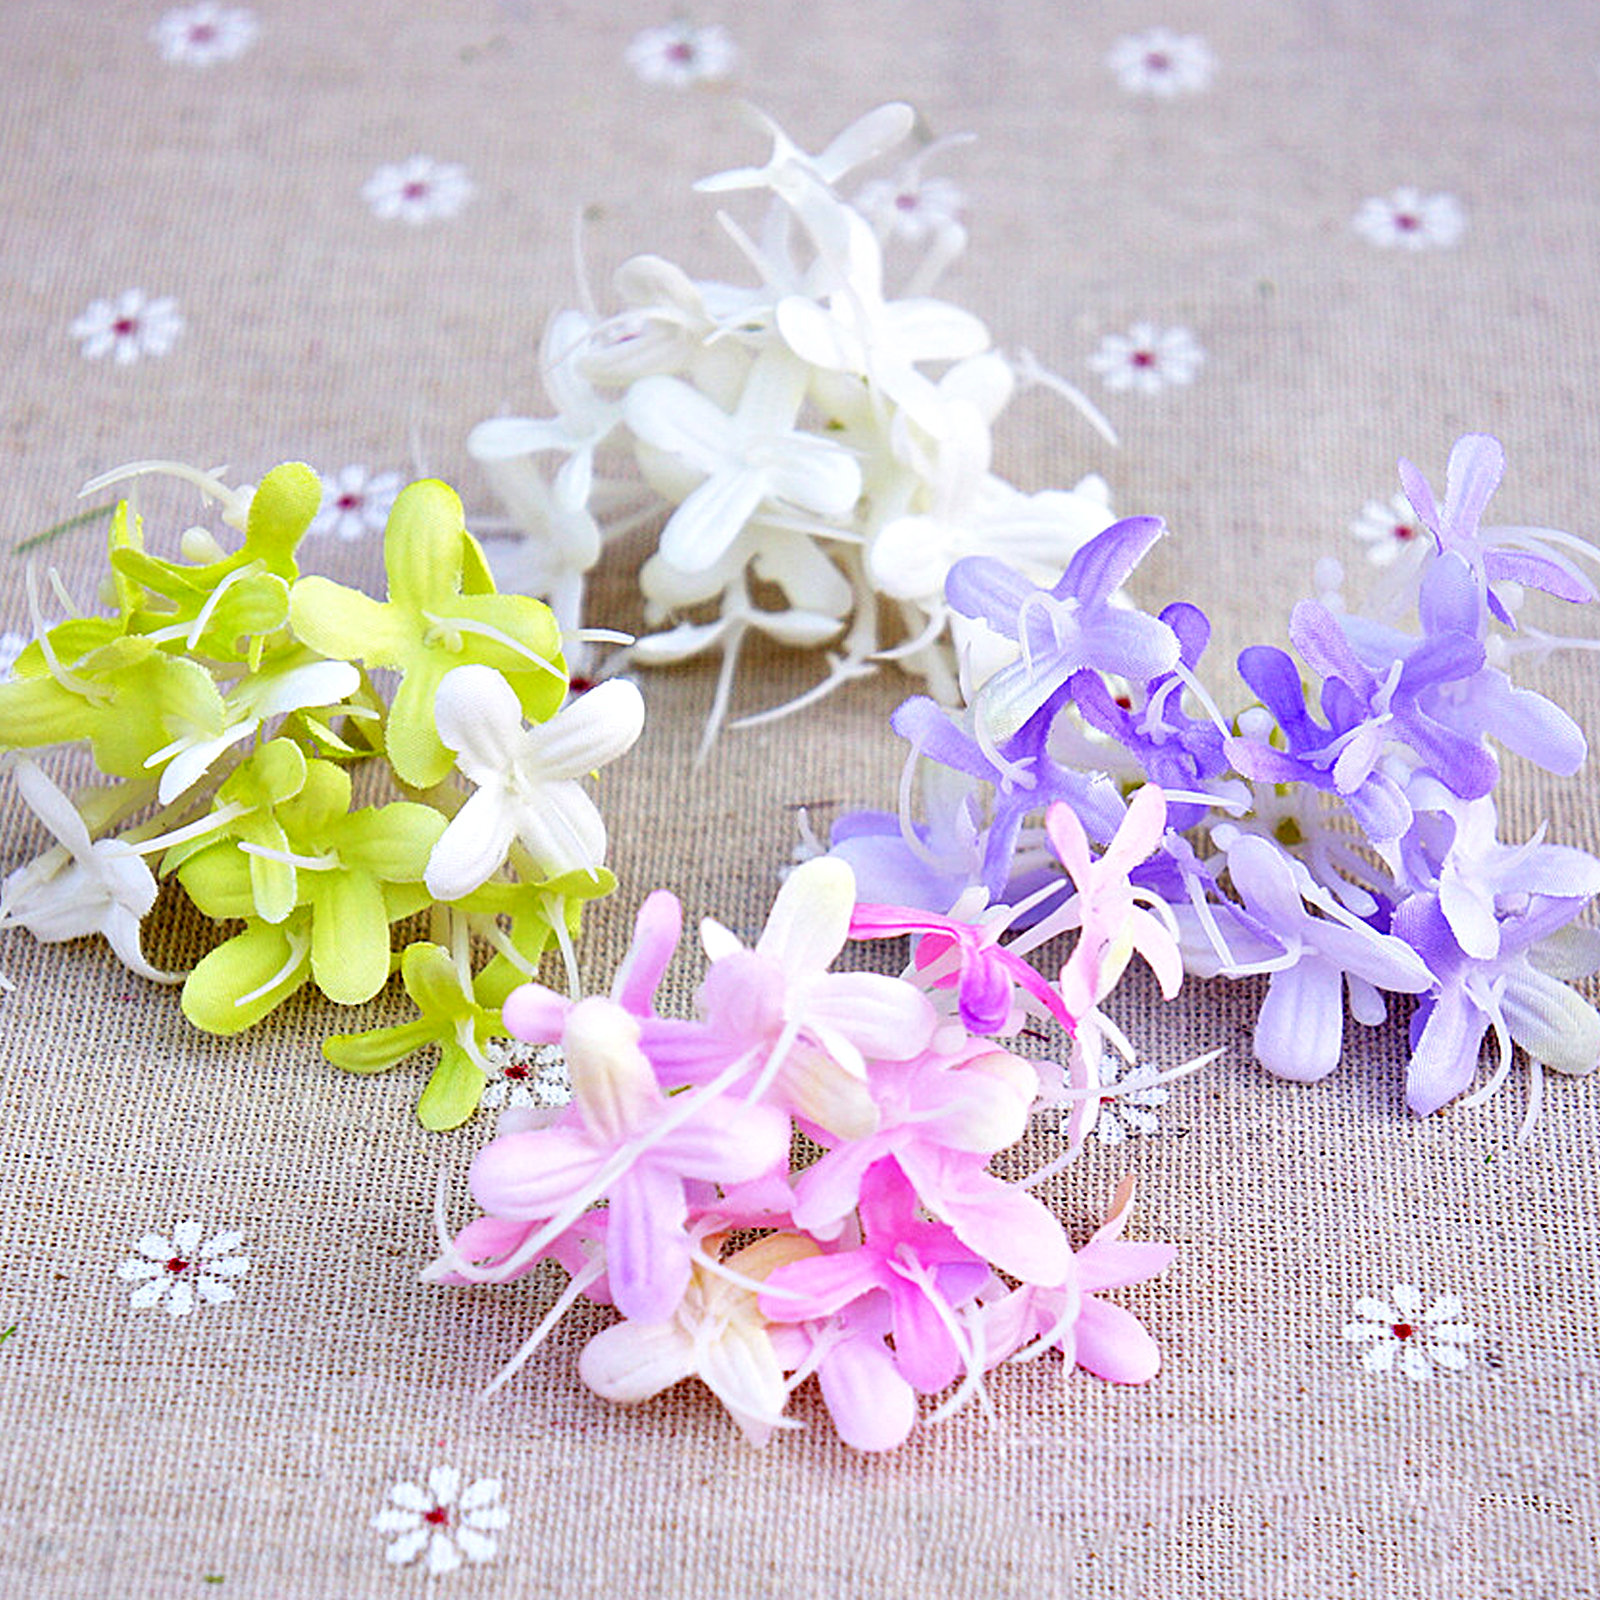 10 200 Artificial Silk Hydrangea Heads Diy Small Silk Flower Bud